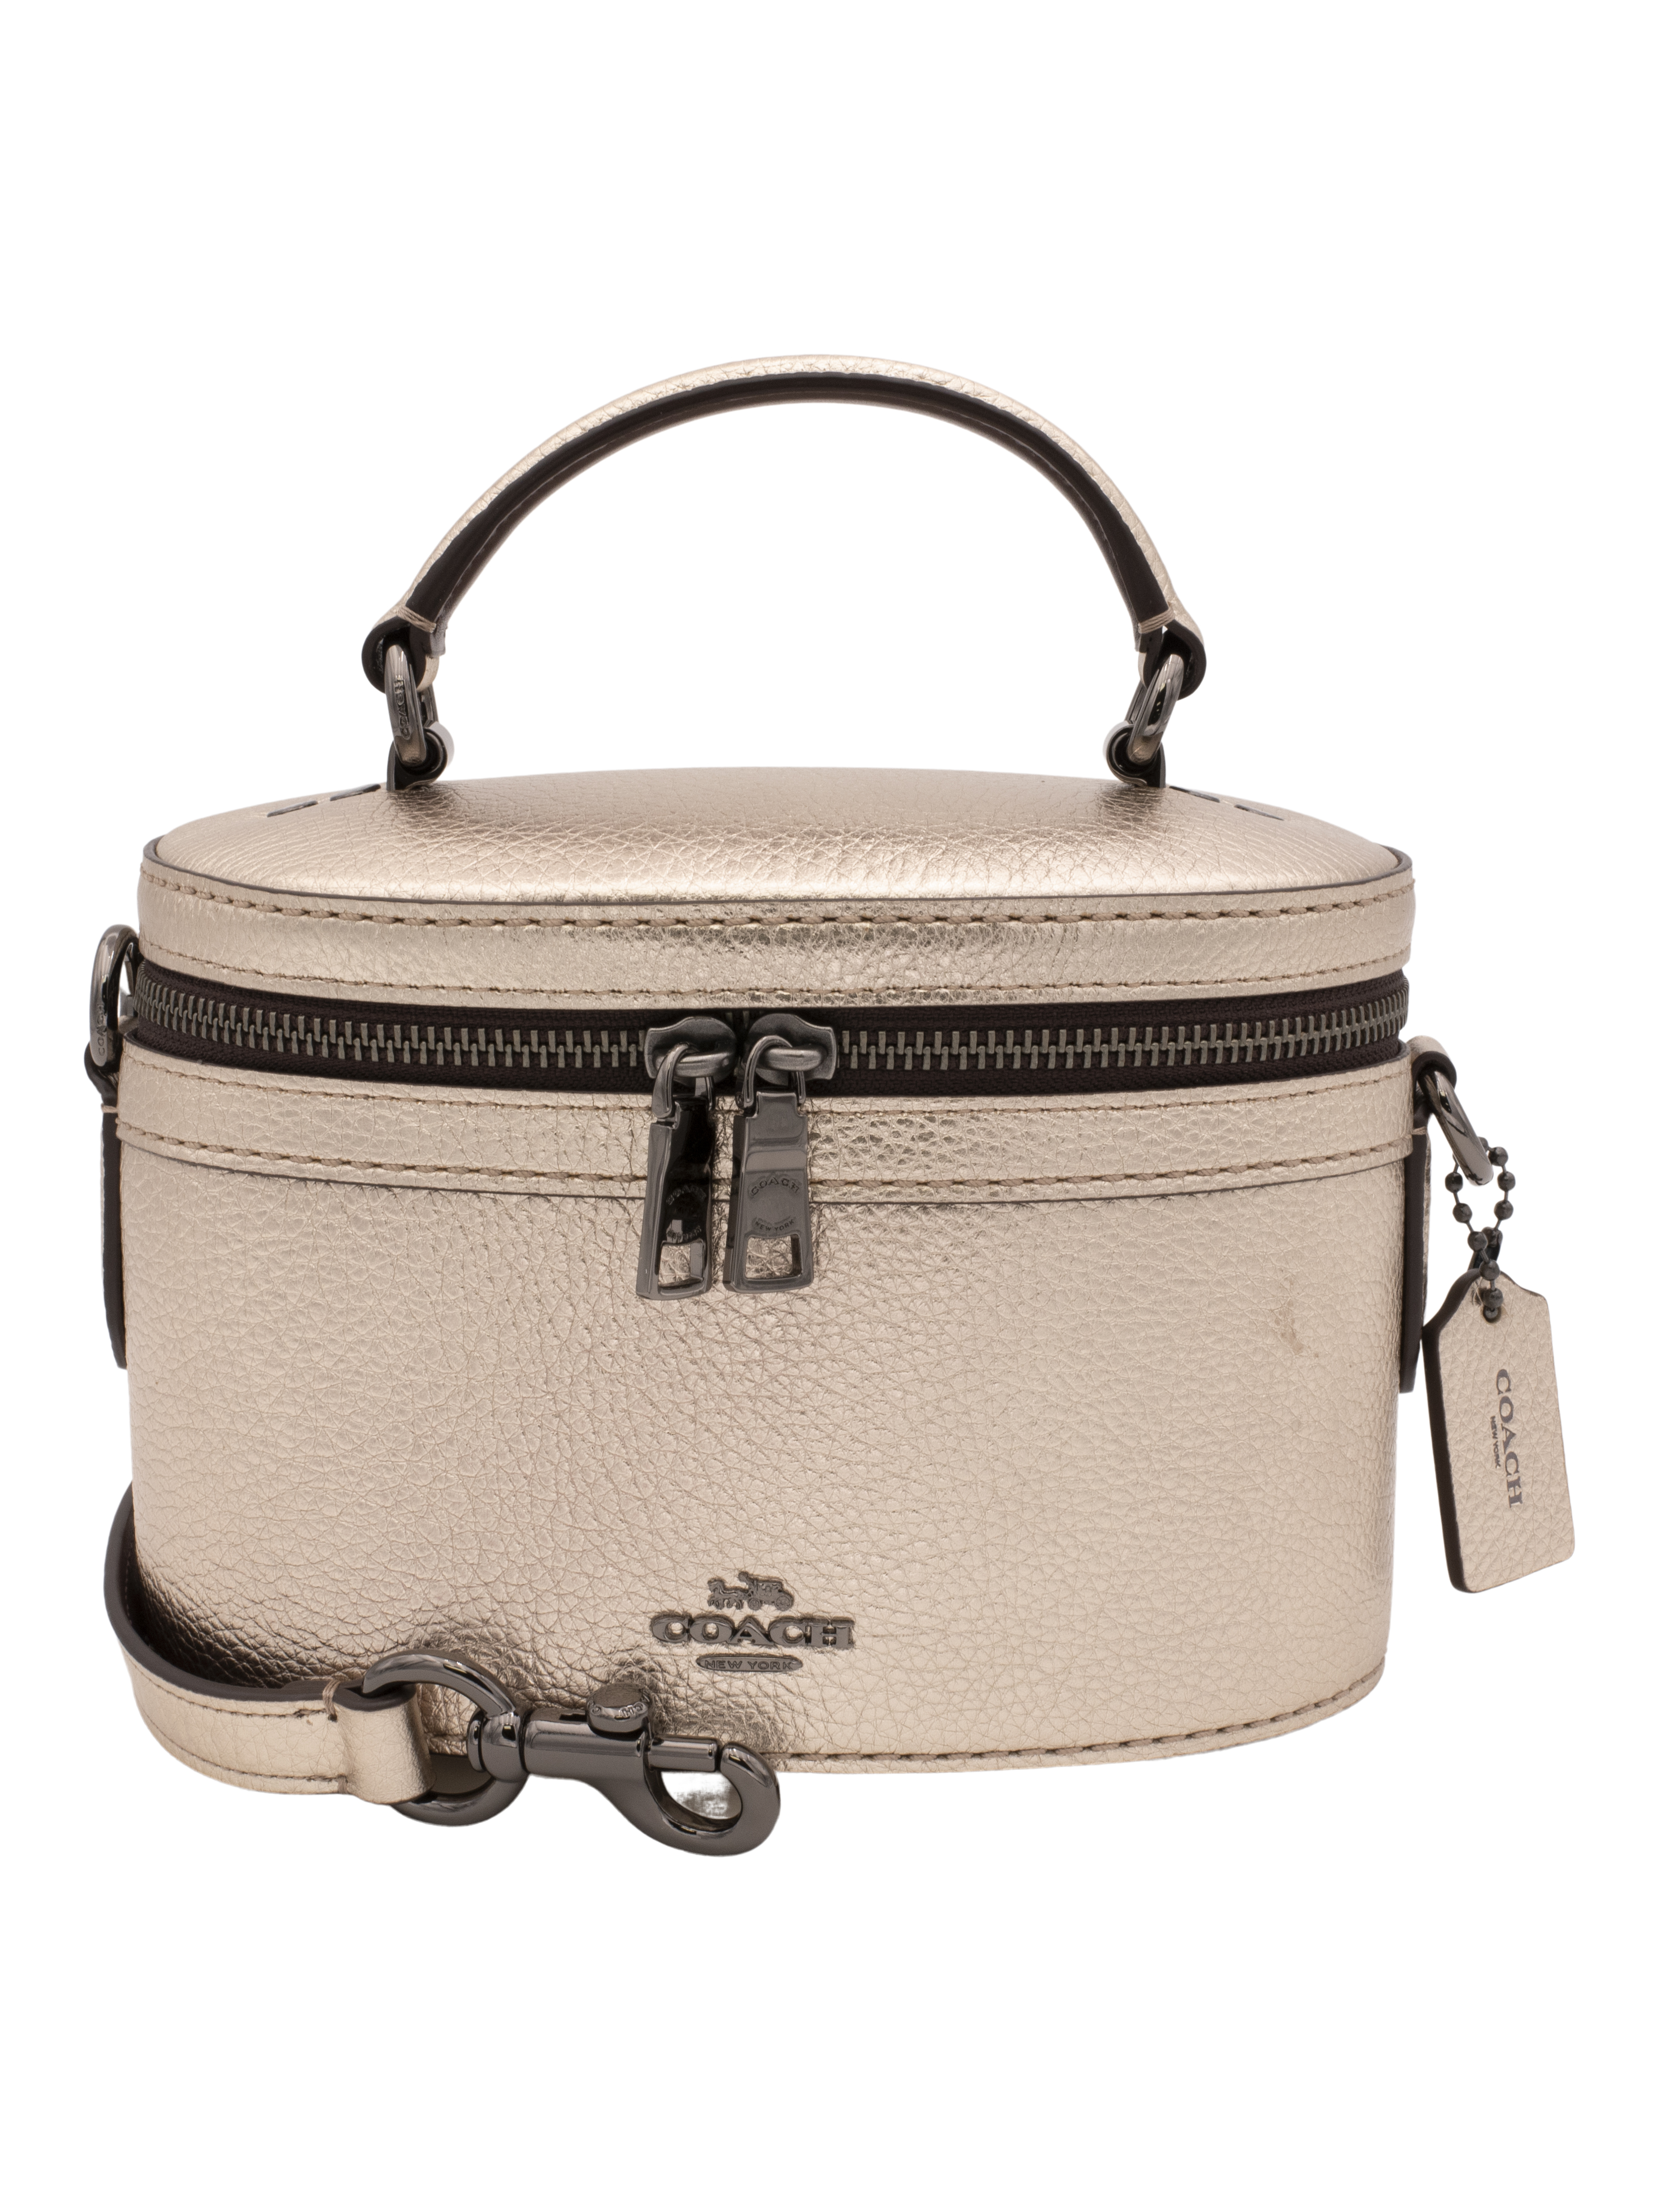 COACH Womens Metallic Trail Bag Gunmetal/Platinum